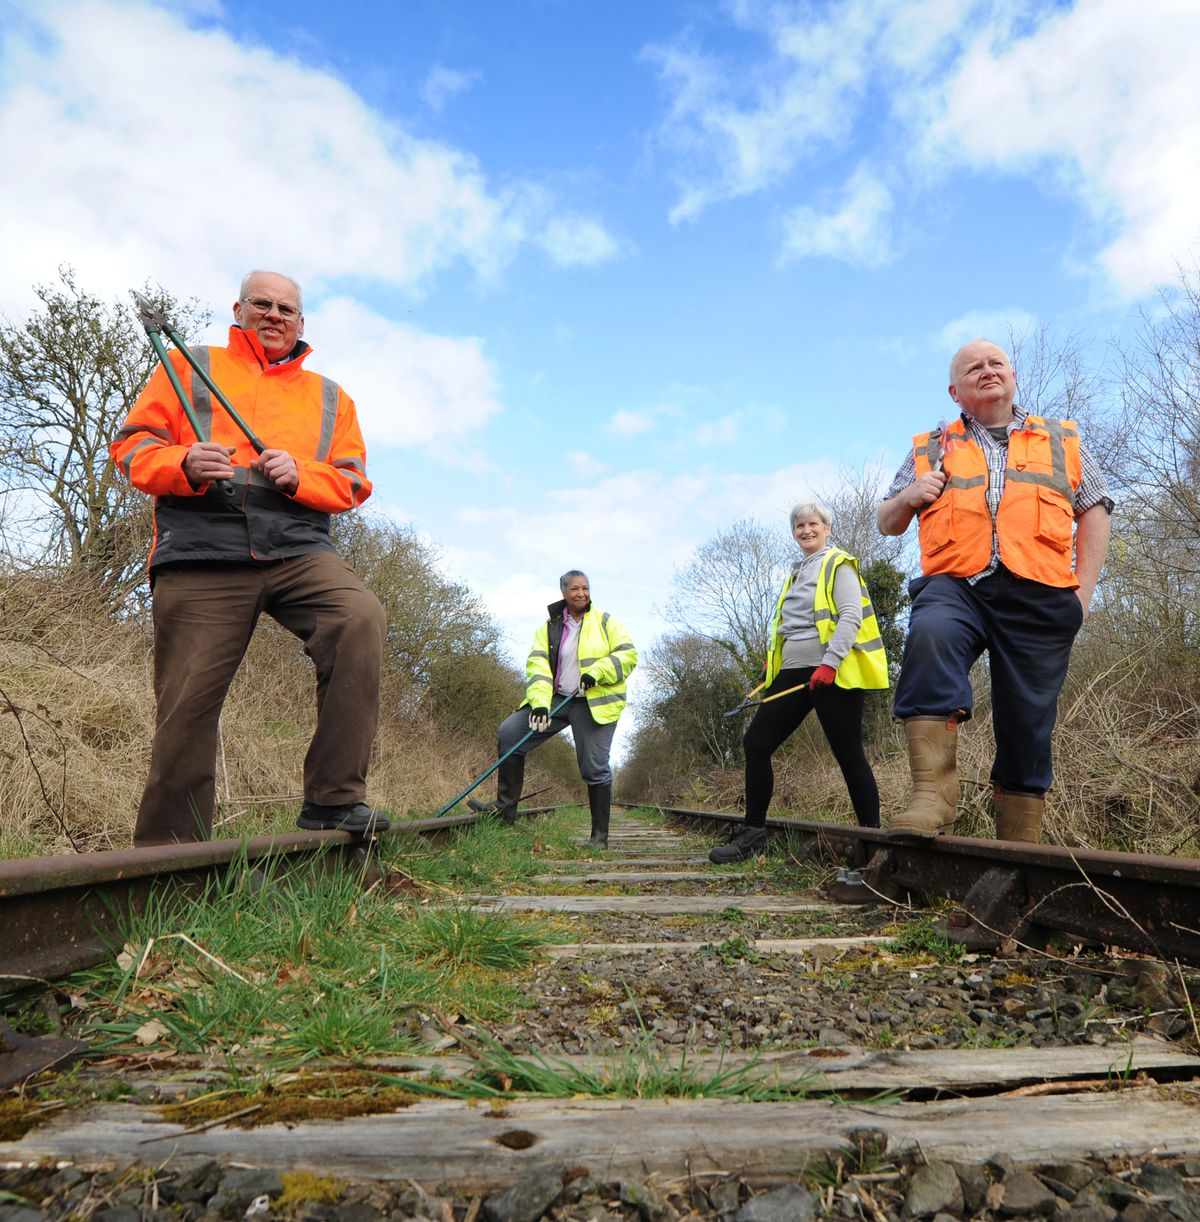 Working on the railway line, are volunteers, Nick Culliford, Joanne Knight, Anne Boden, and Norman Knight